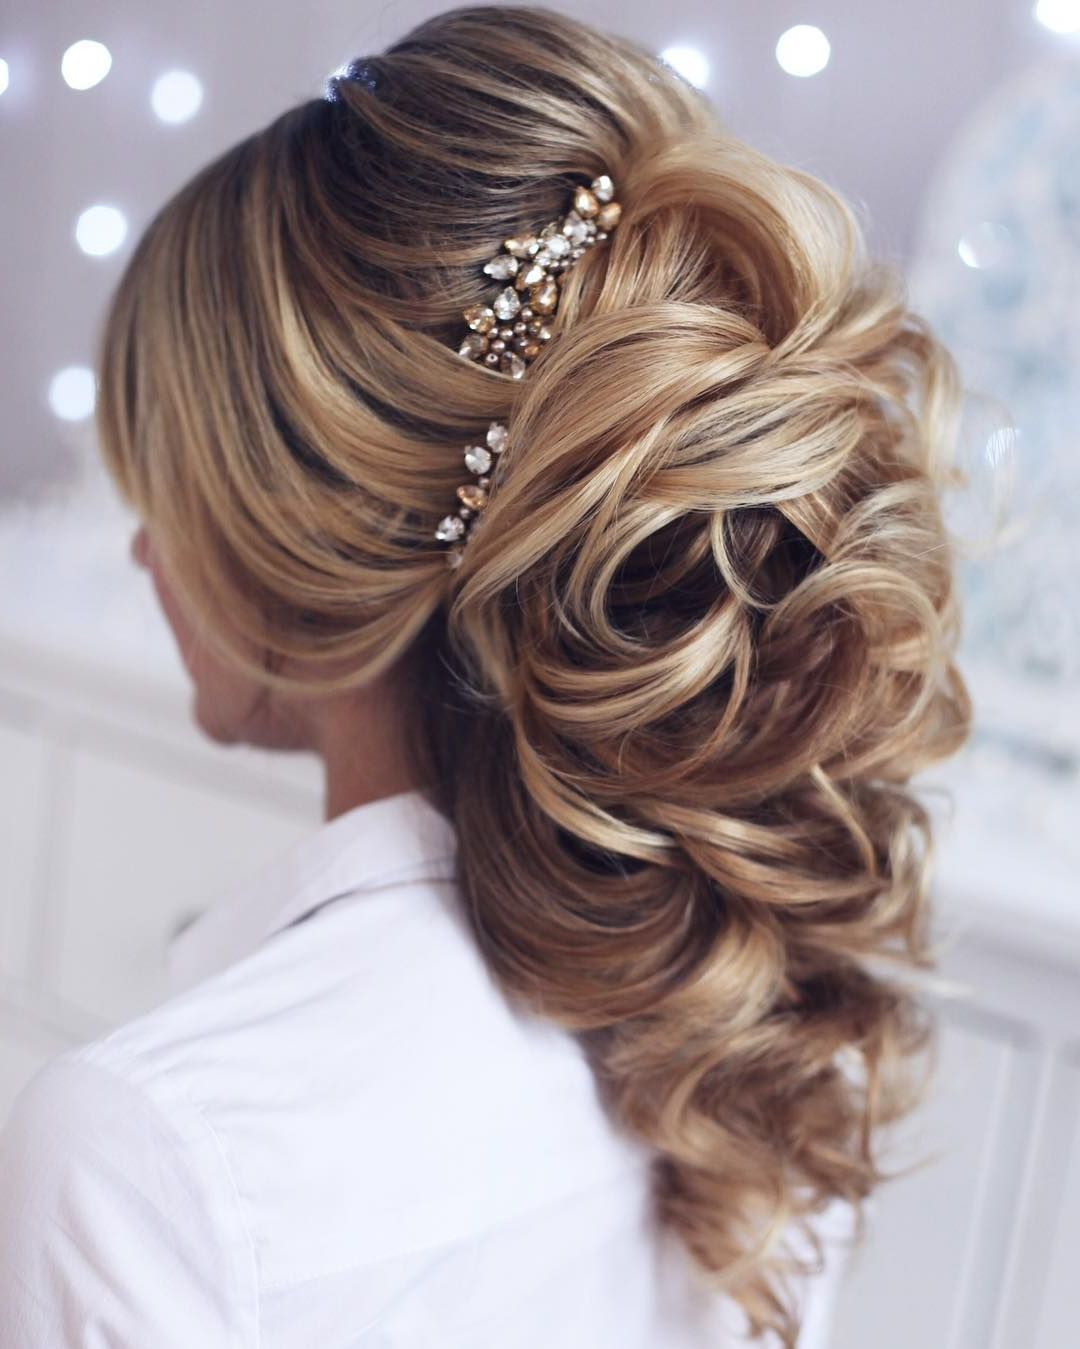 Best And Newest Curly Ponytail Wedding Hairstyles For Long Hair For 10 Lavish Wedding Hairstyles For Long Hair – Wedding Hairstyle Ideas (View 4 of 20)